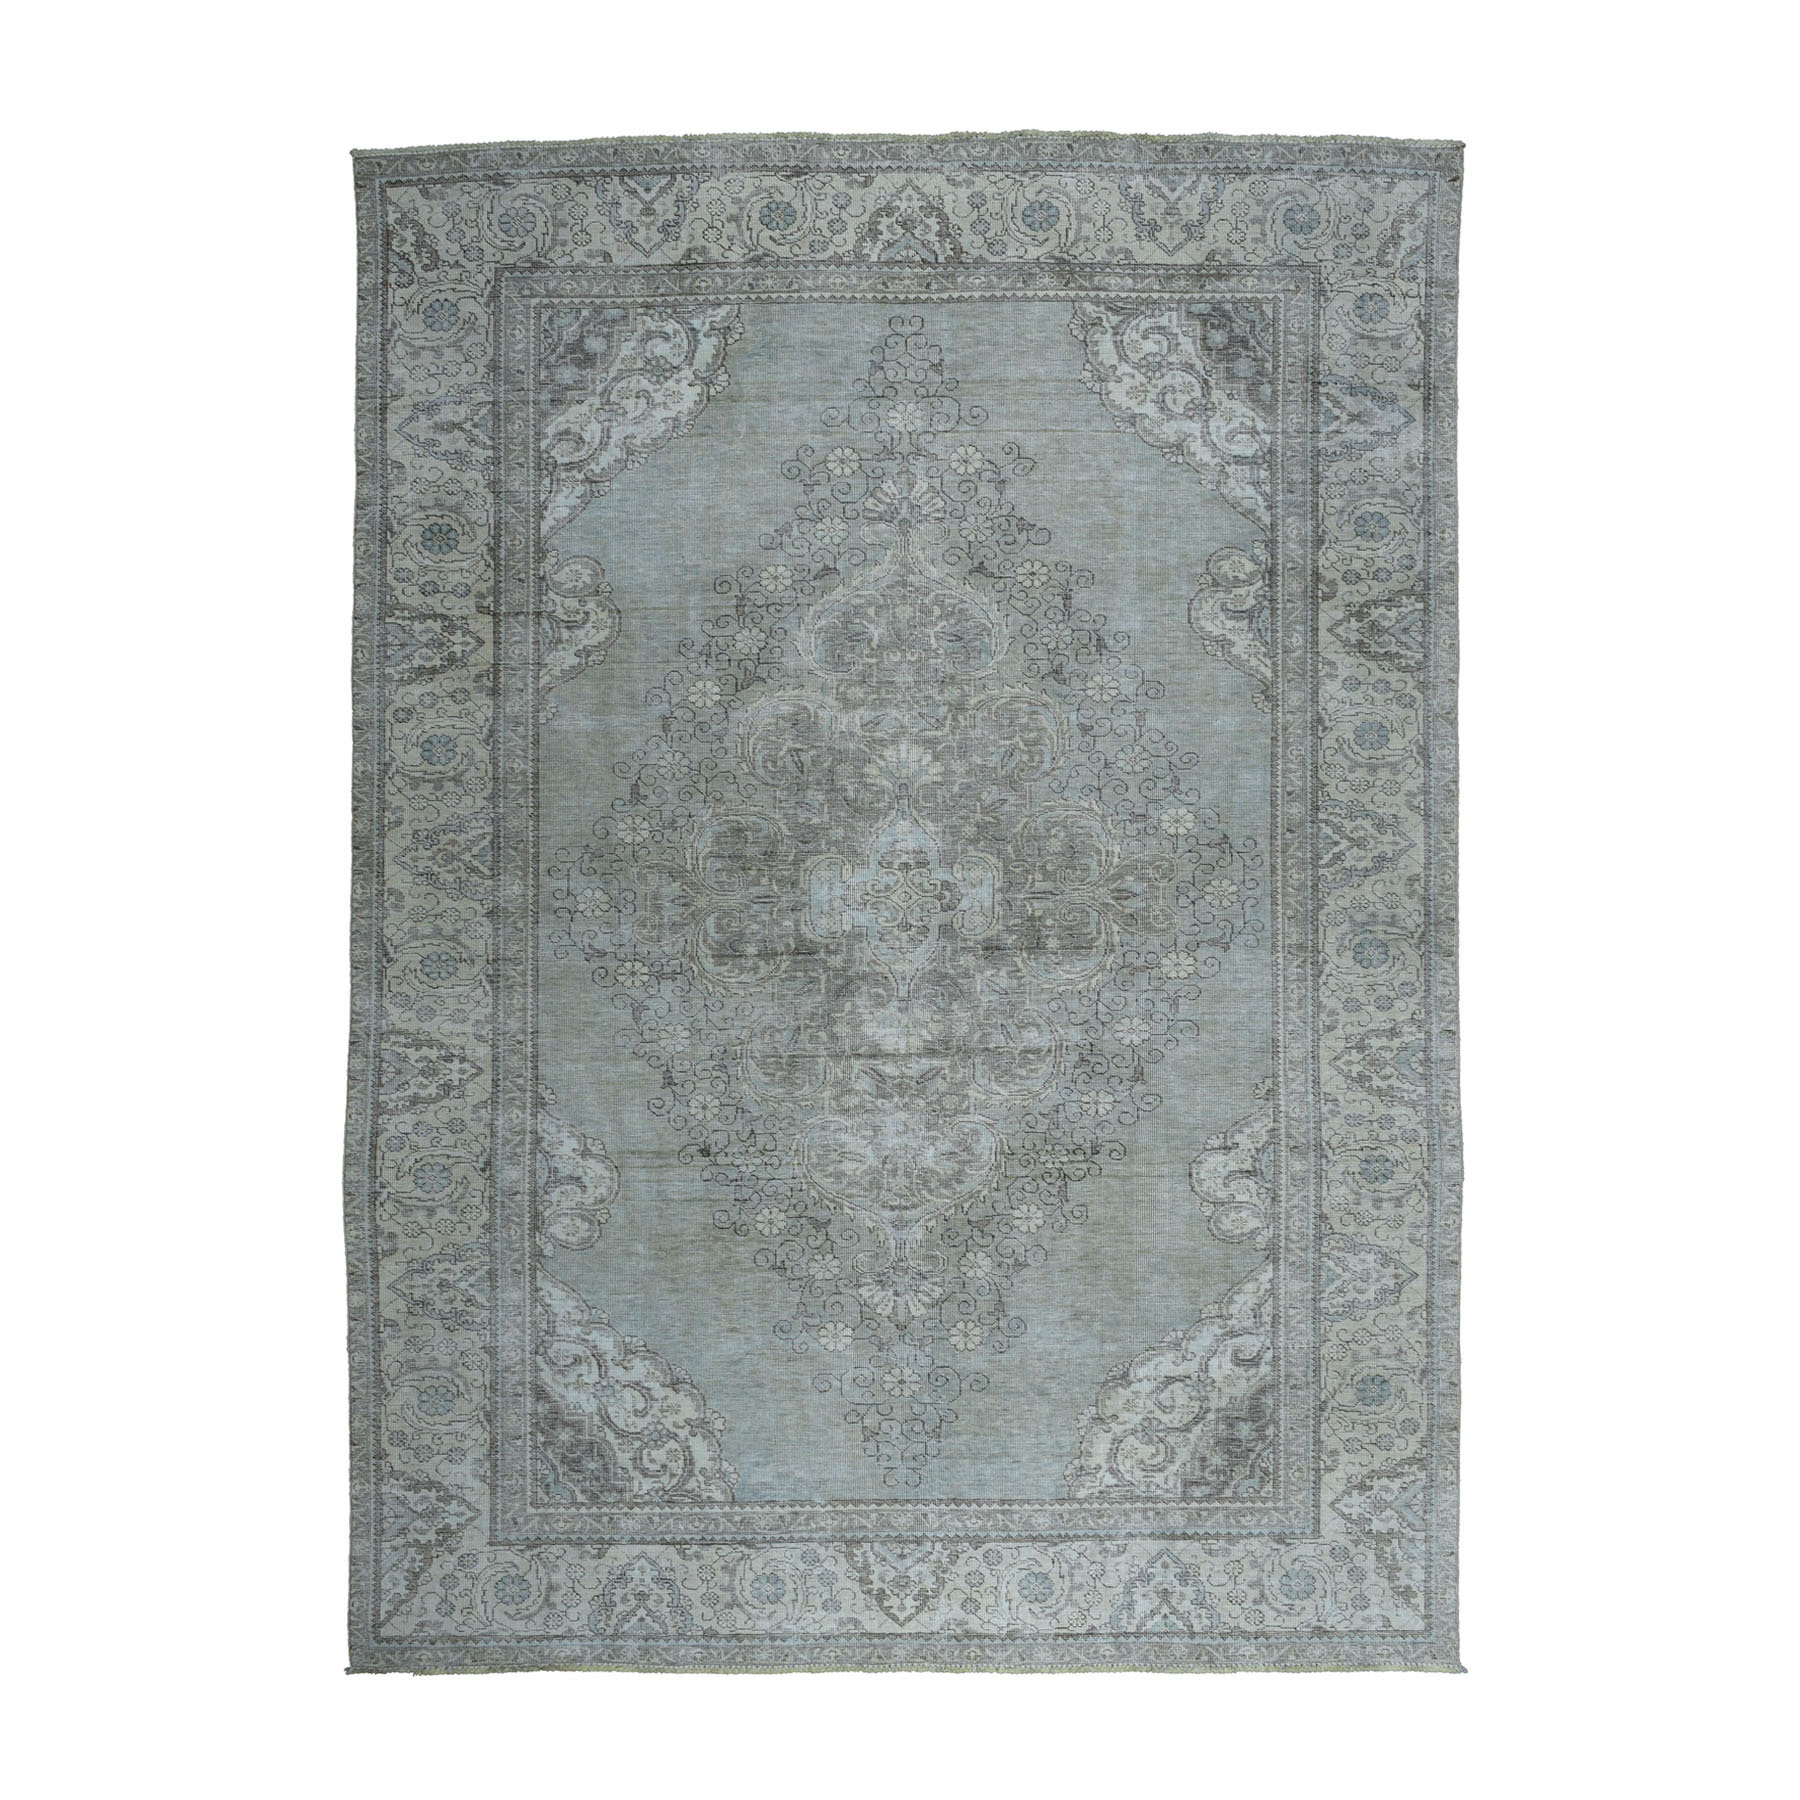 Fetneh Collection And Vintage Overdyed Collection Hand Knotted Teal Rug No: 1104264